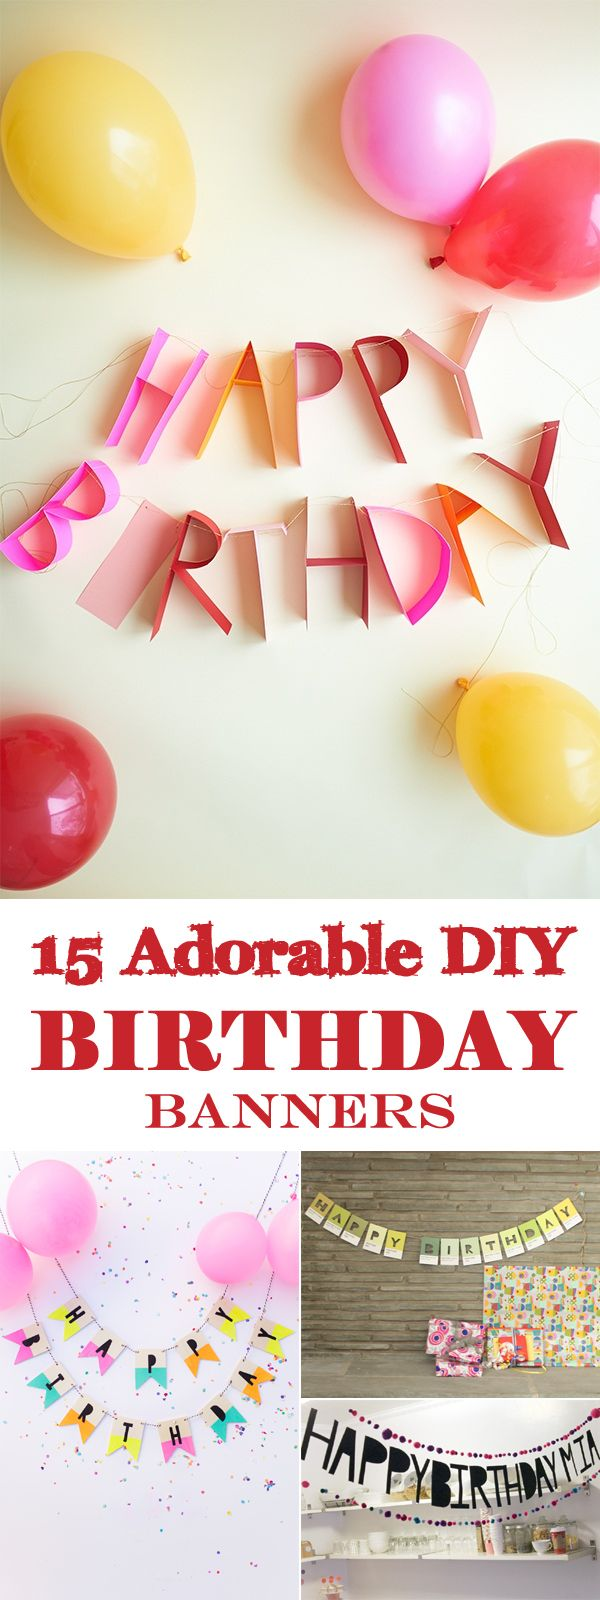 15 Adorable DIY Birthday Banners - party decorations